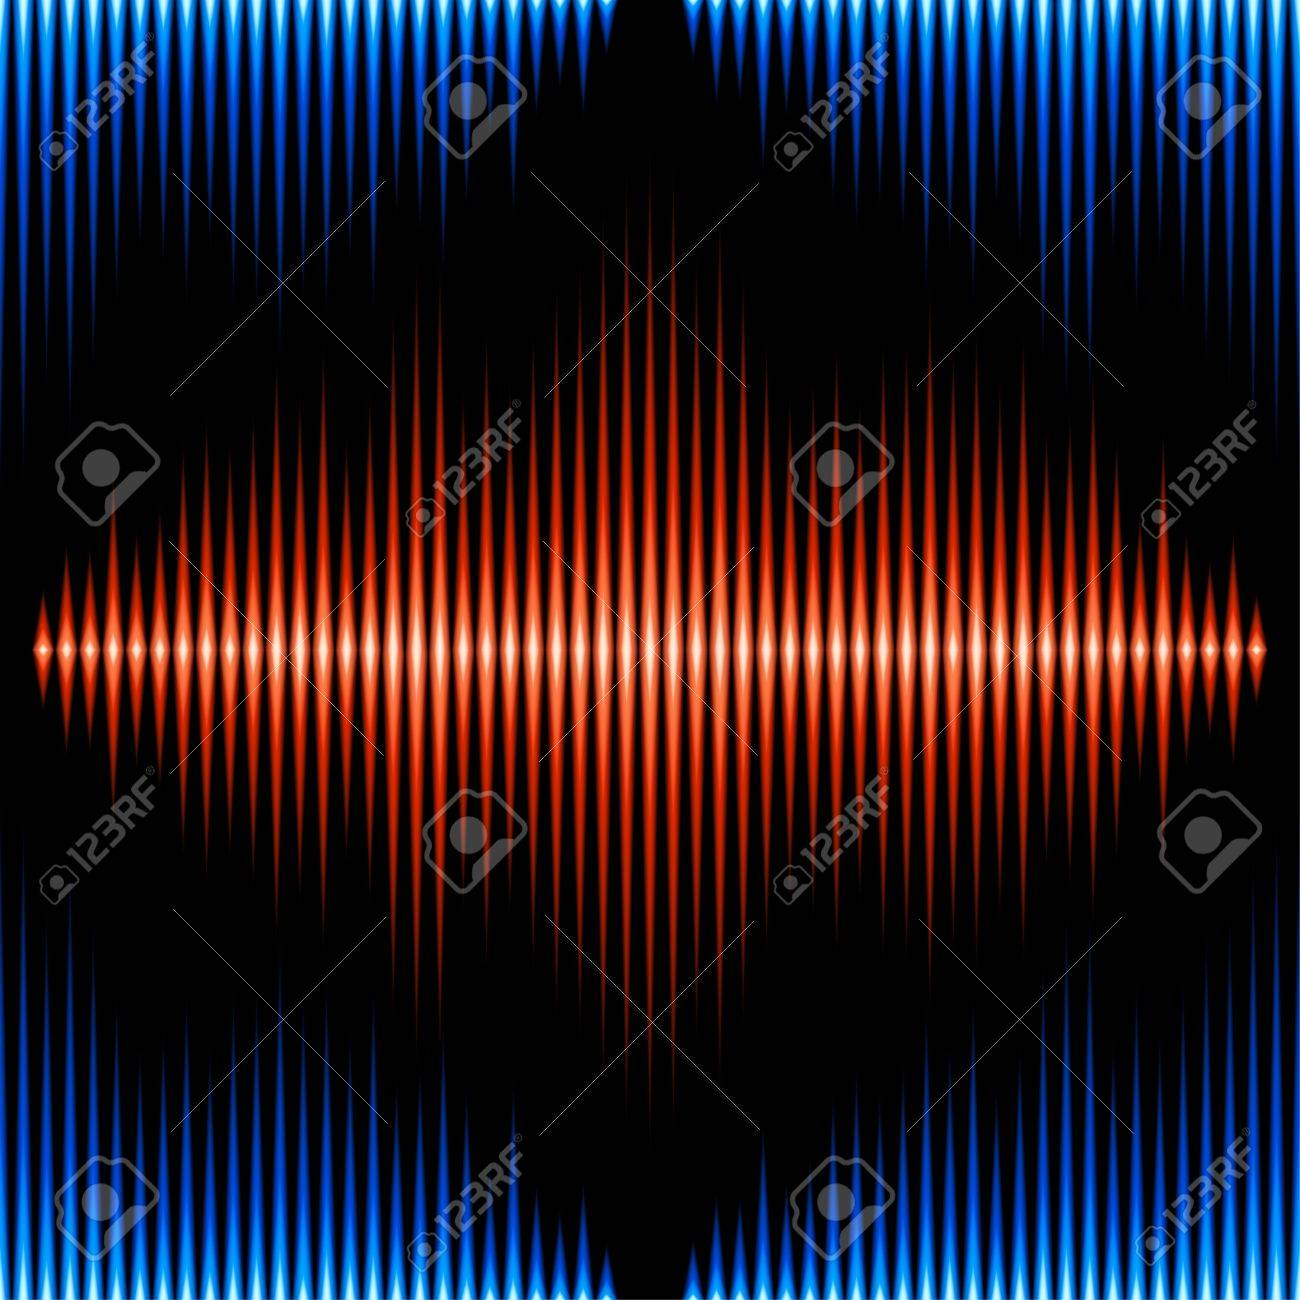 Seamless pattern with blue and orange sound waveform Stock Vector - 27515304